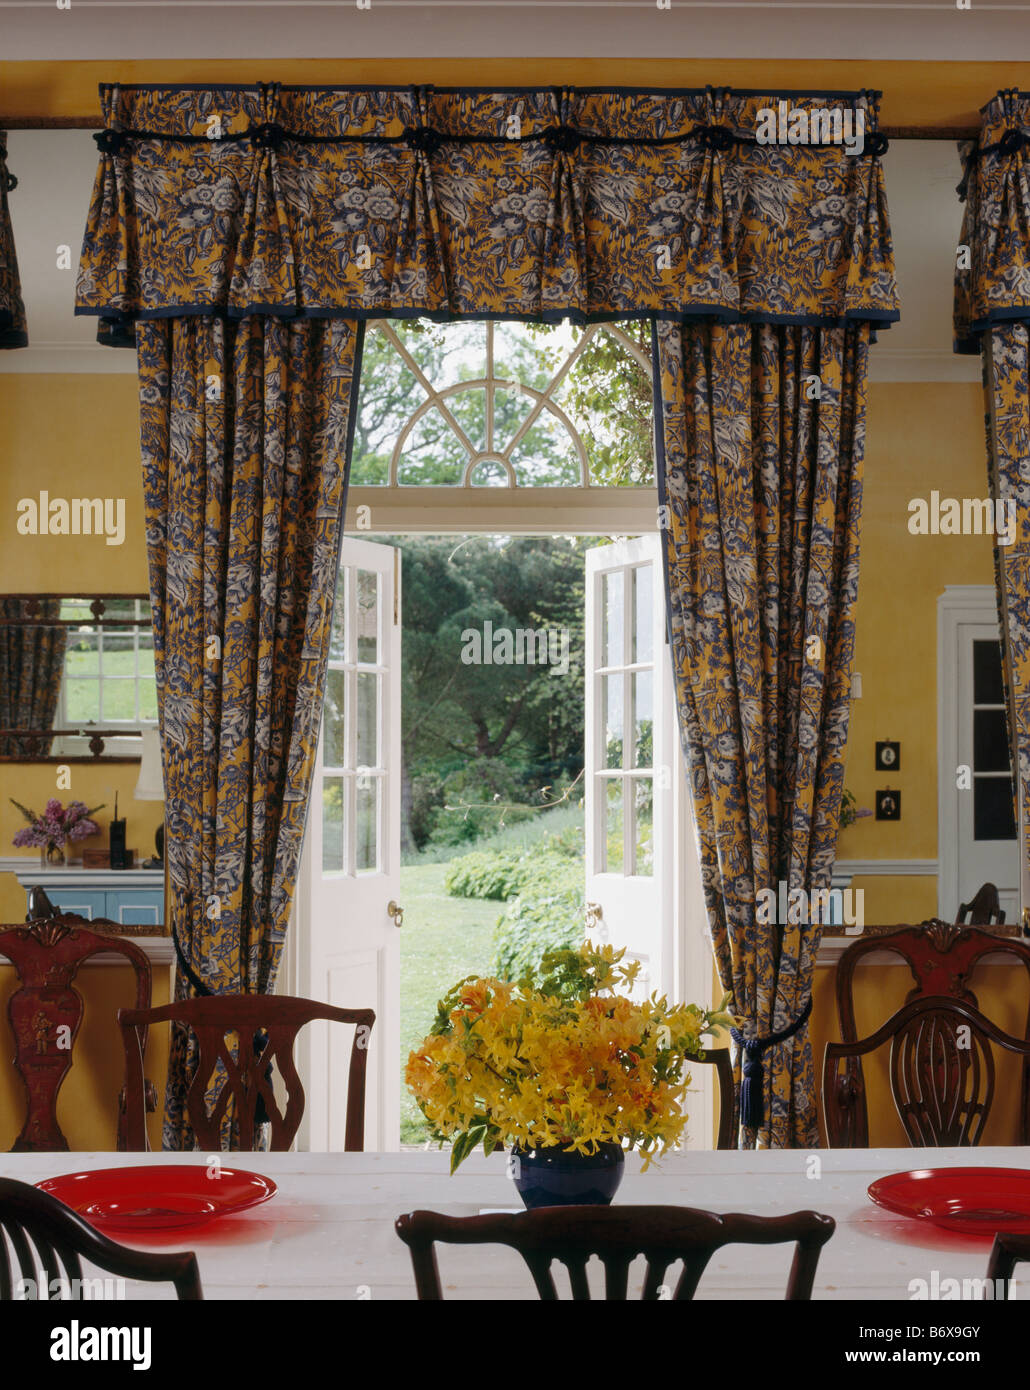 Patterned Curtains At Open French Doors With View Of Garden In Yellow Country Dining Room